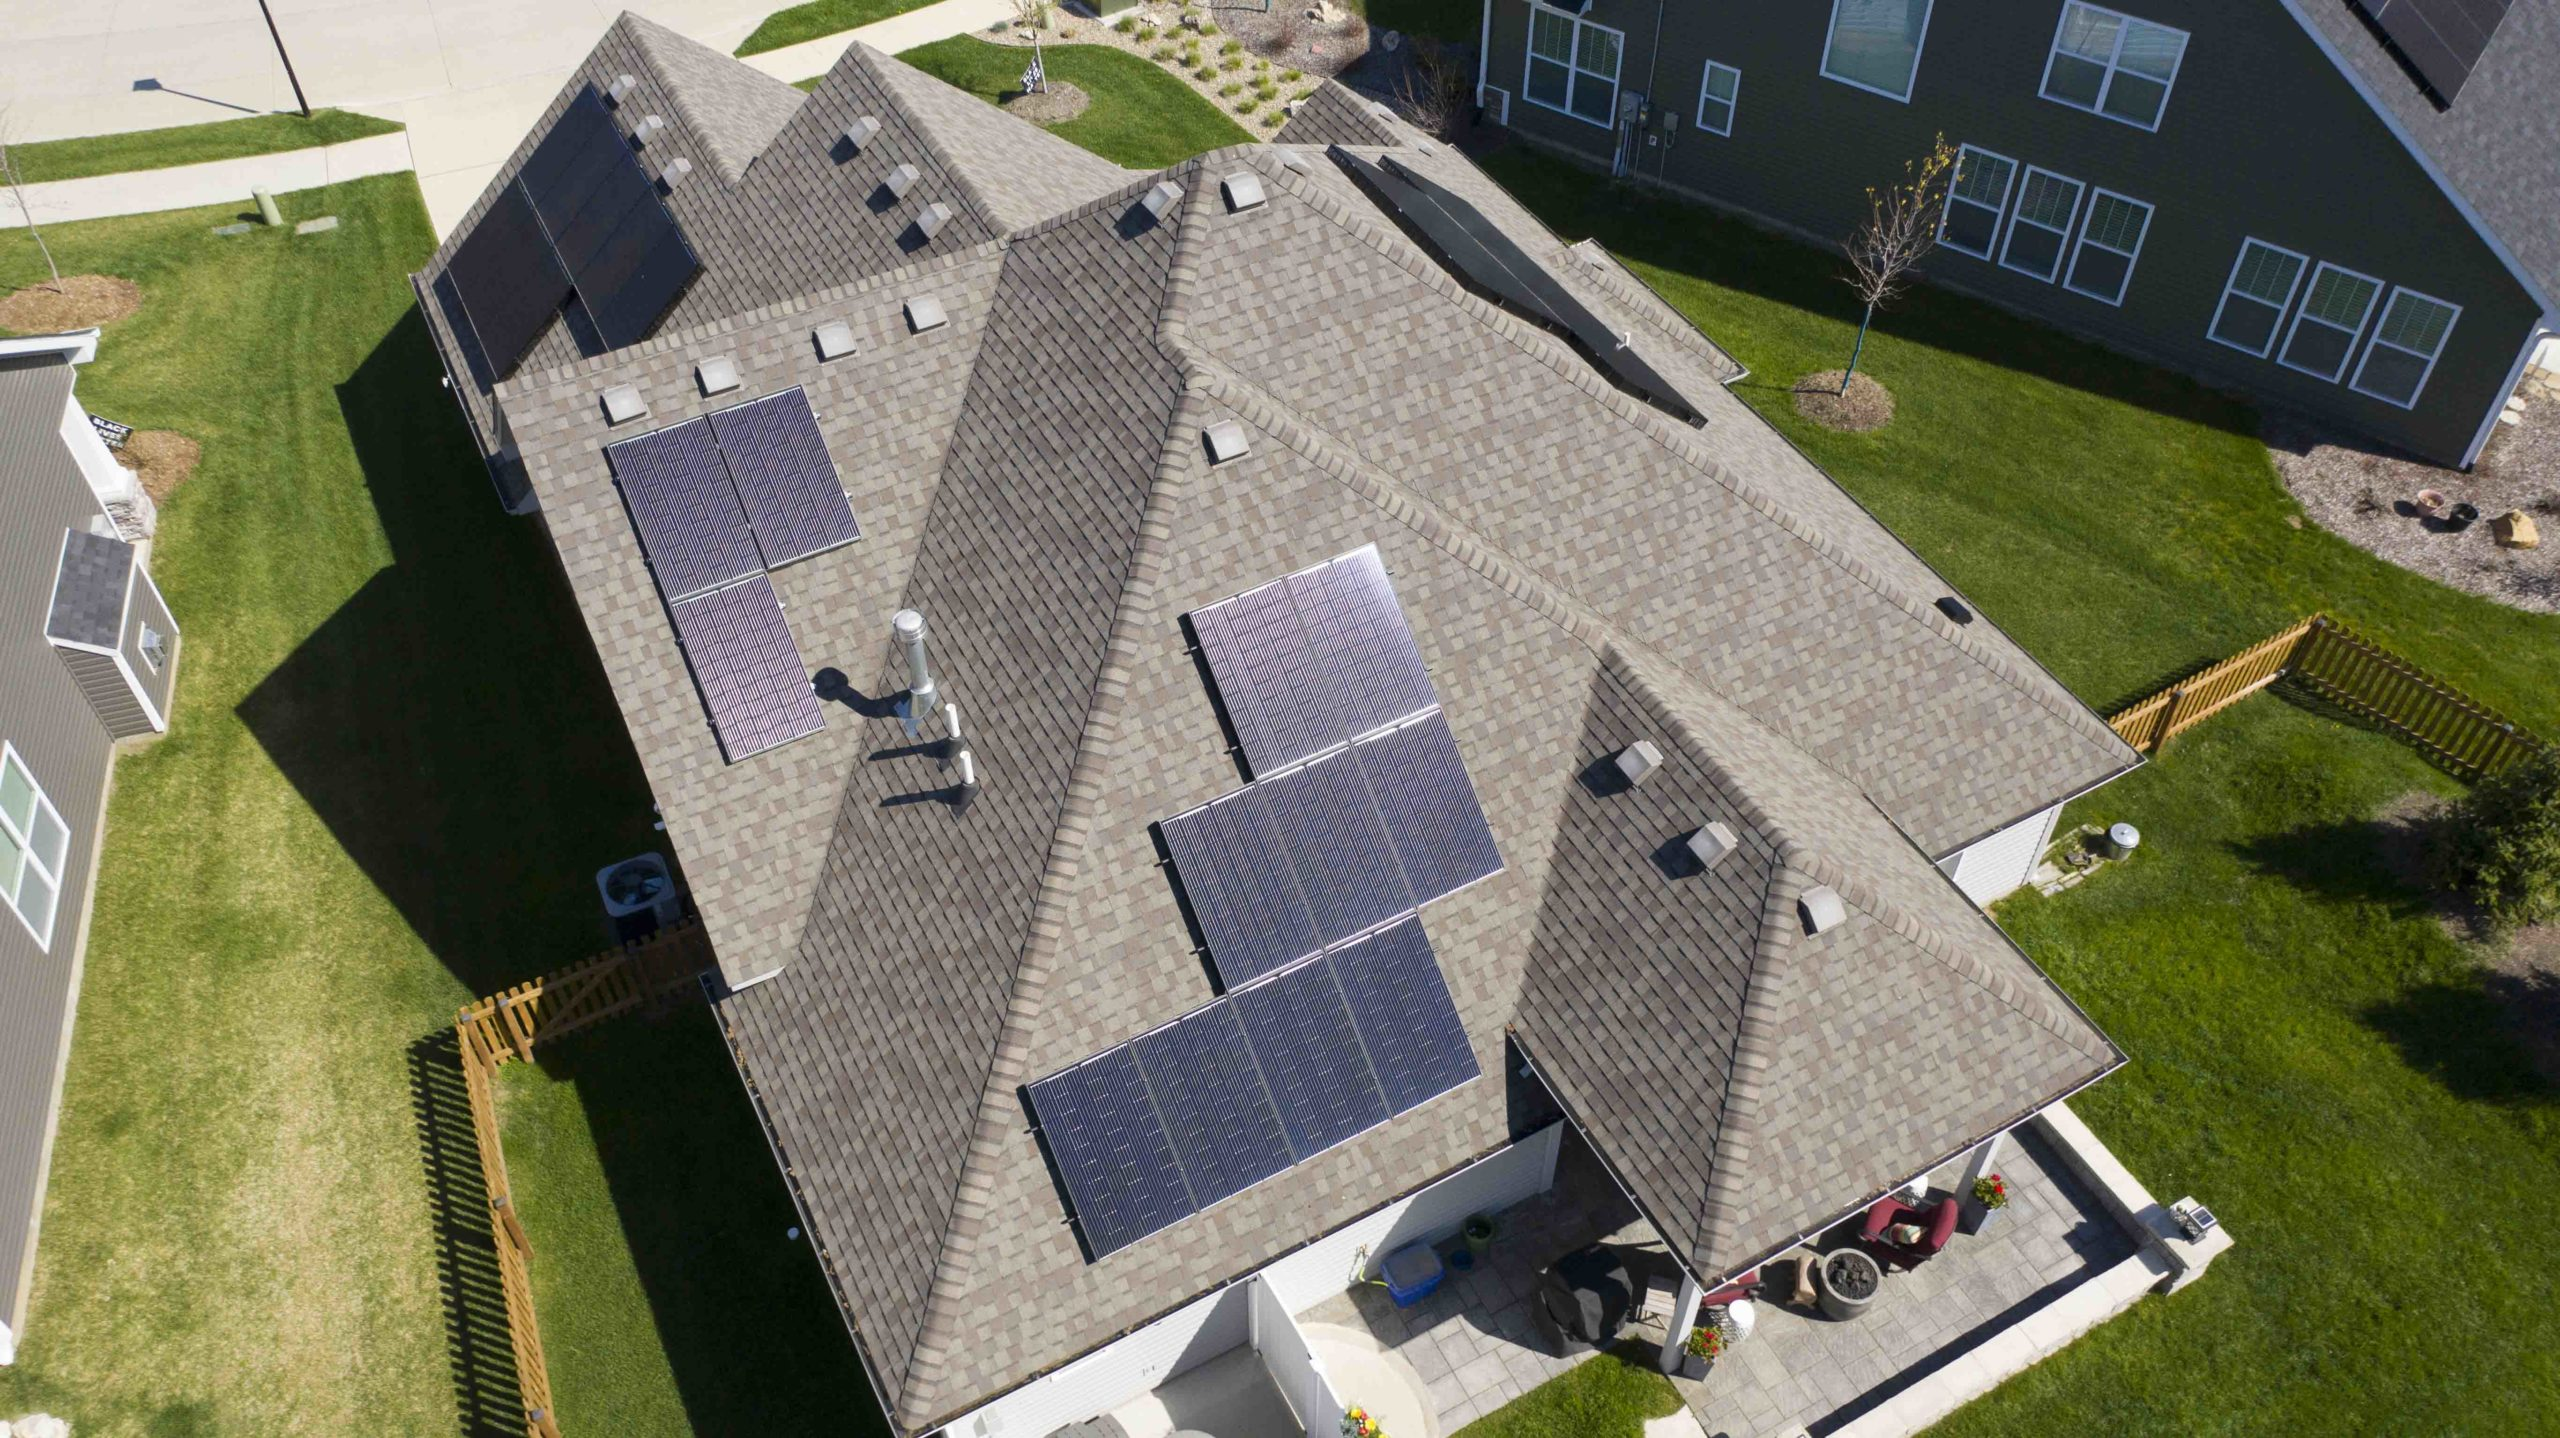 Multiple sides of this residential roof are utilized to capture the solar energy.